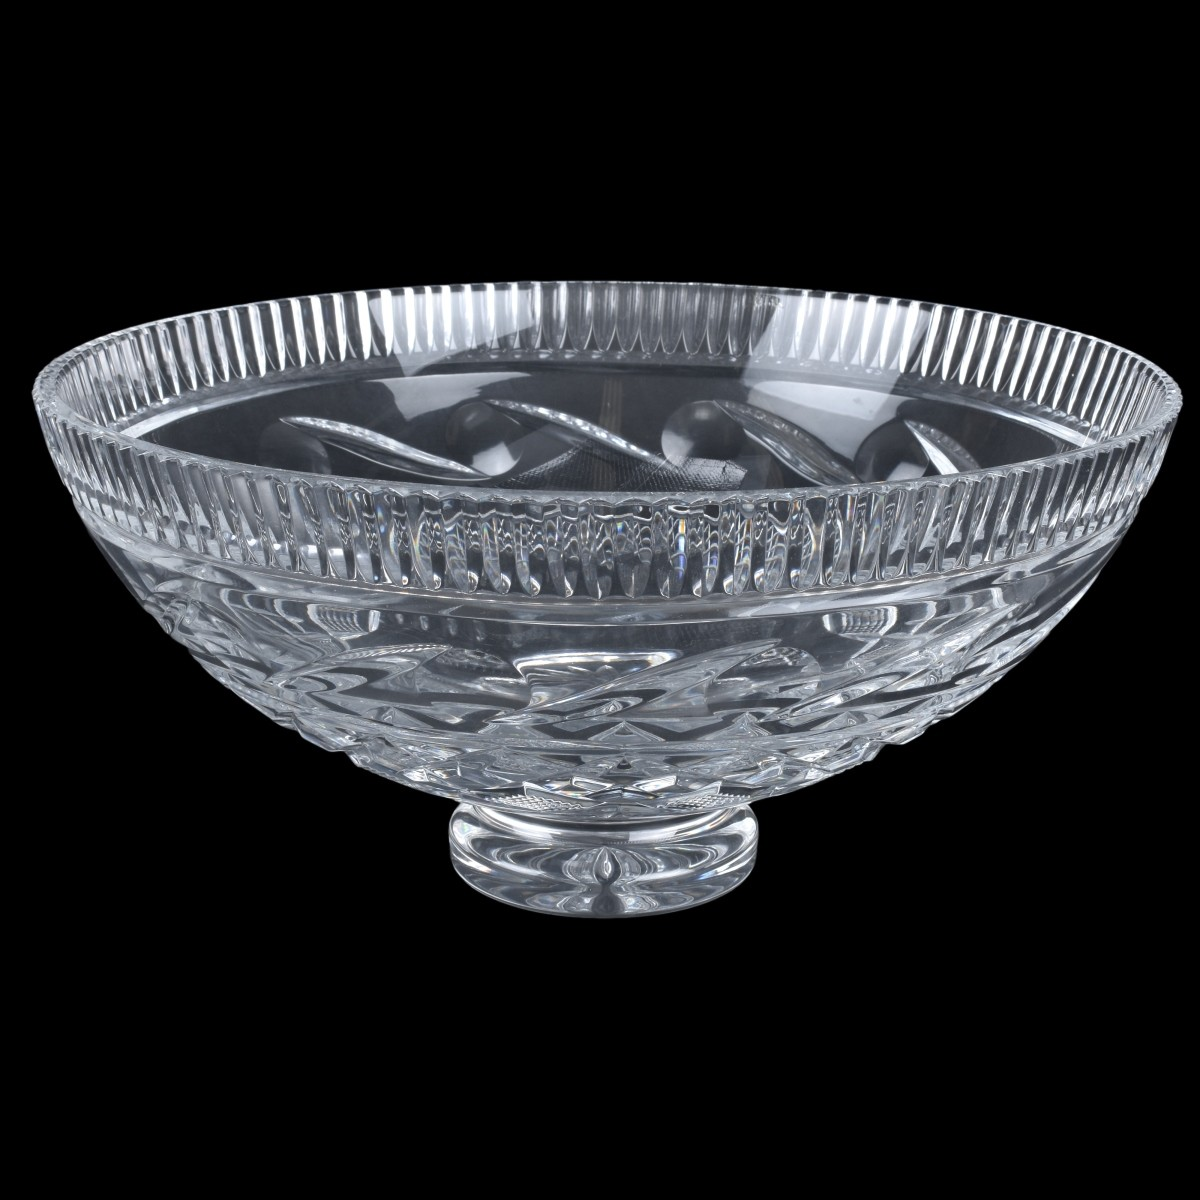 Waterford Cut Crystal Footed Centerpiece Bowl